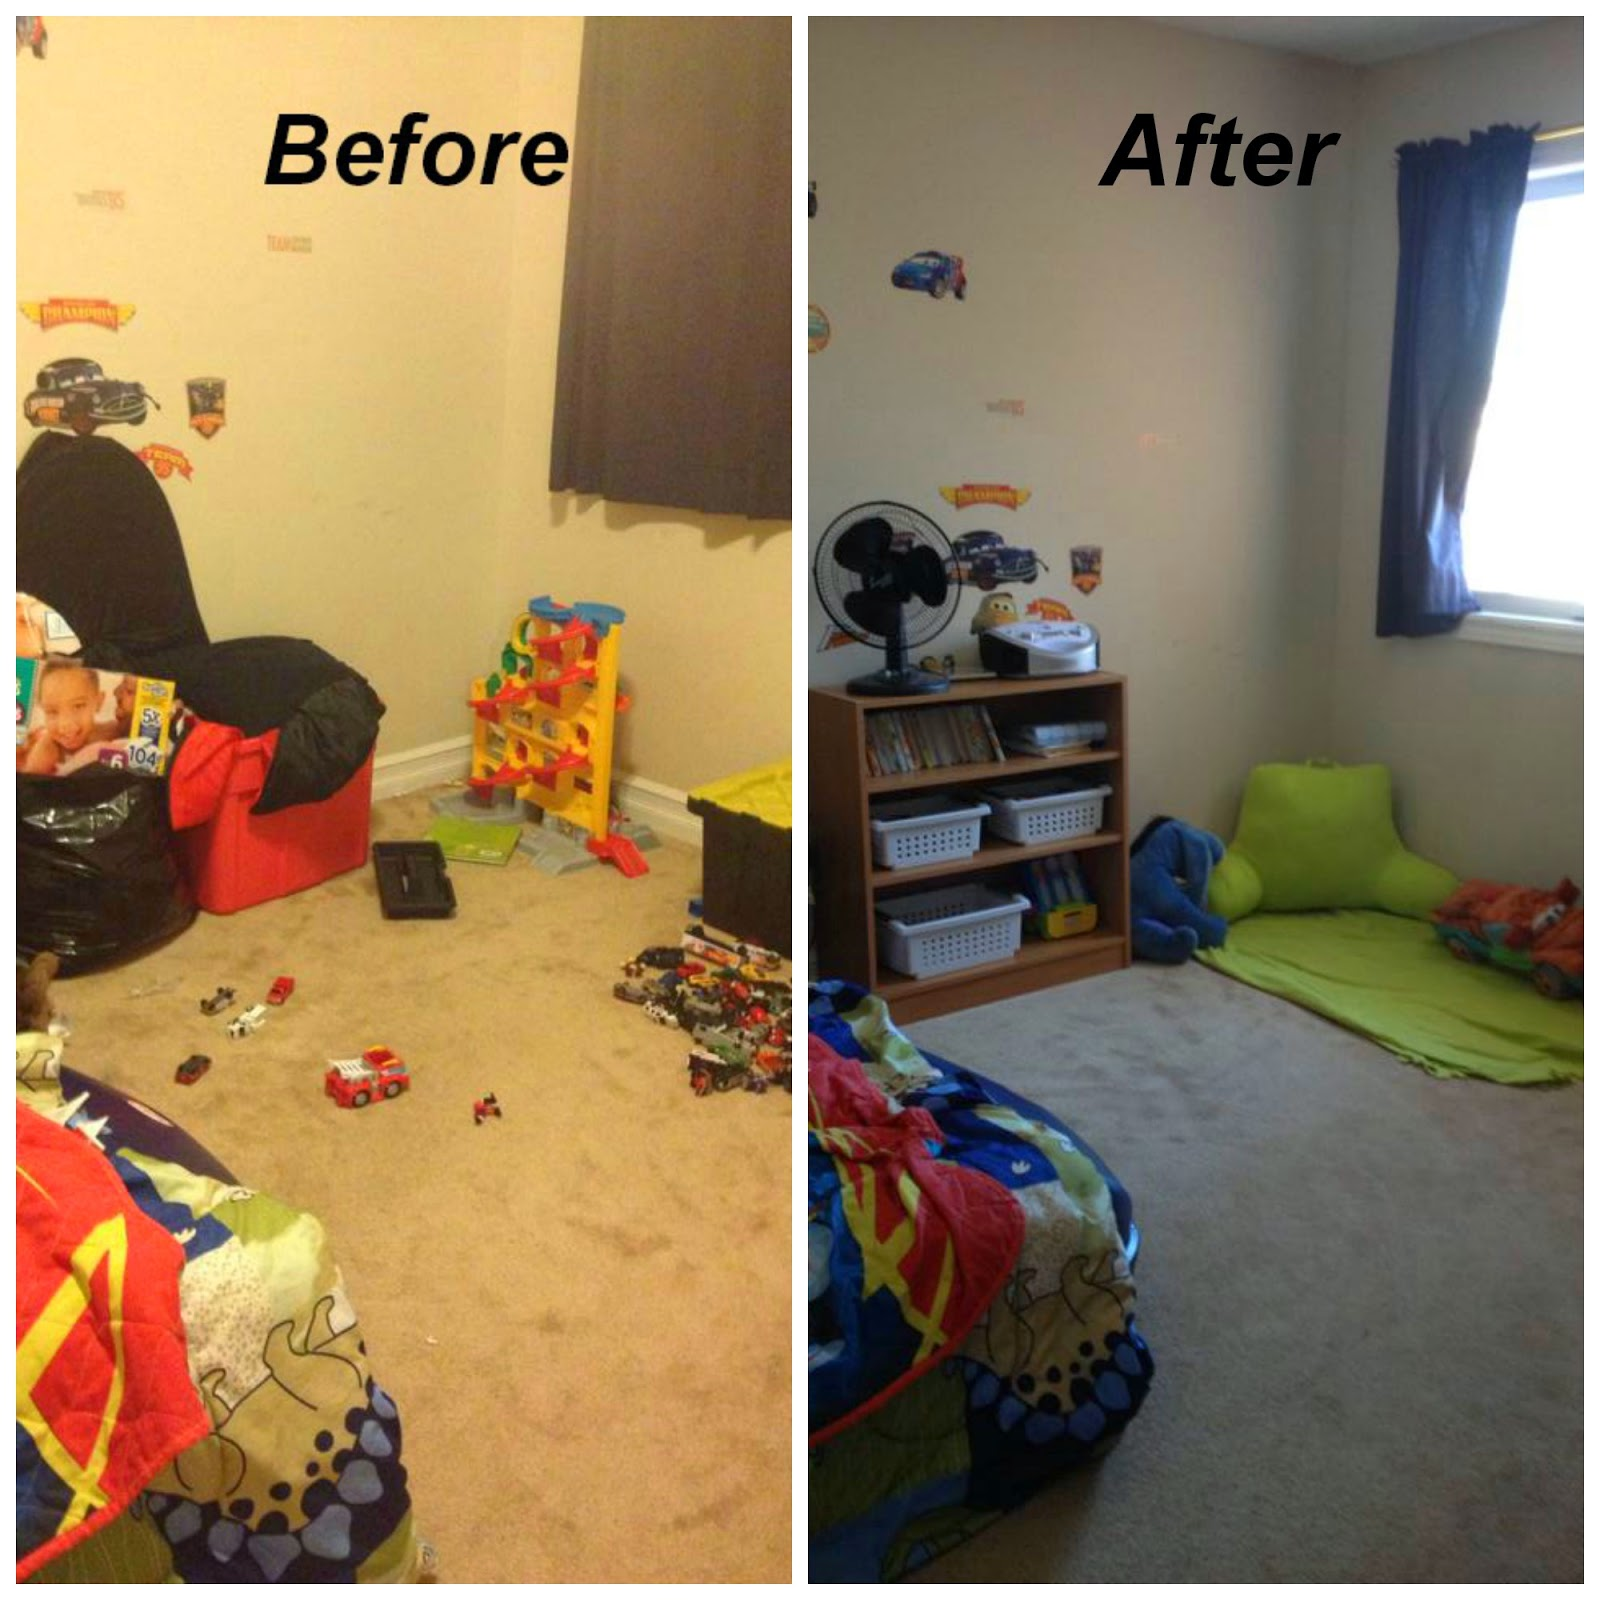 walmart, #springinspiration challenge, spring cleaning, reading nook